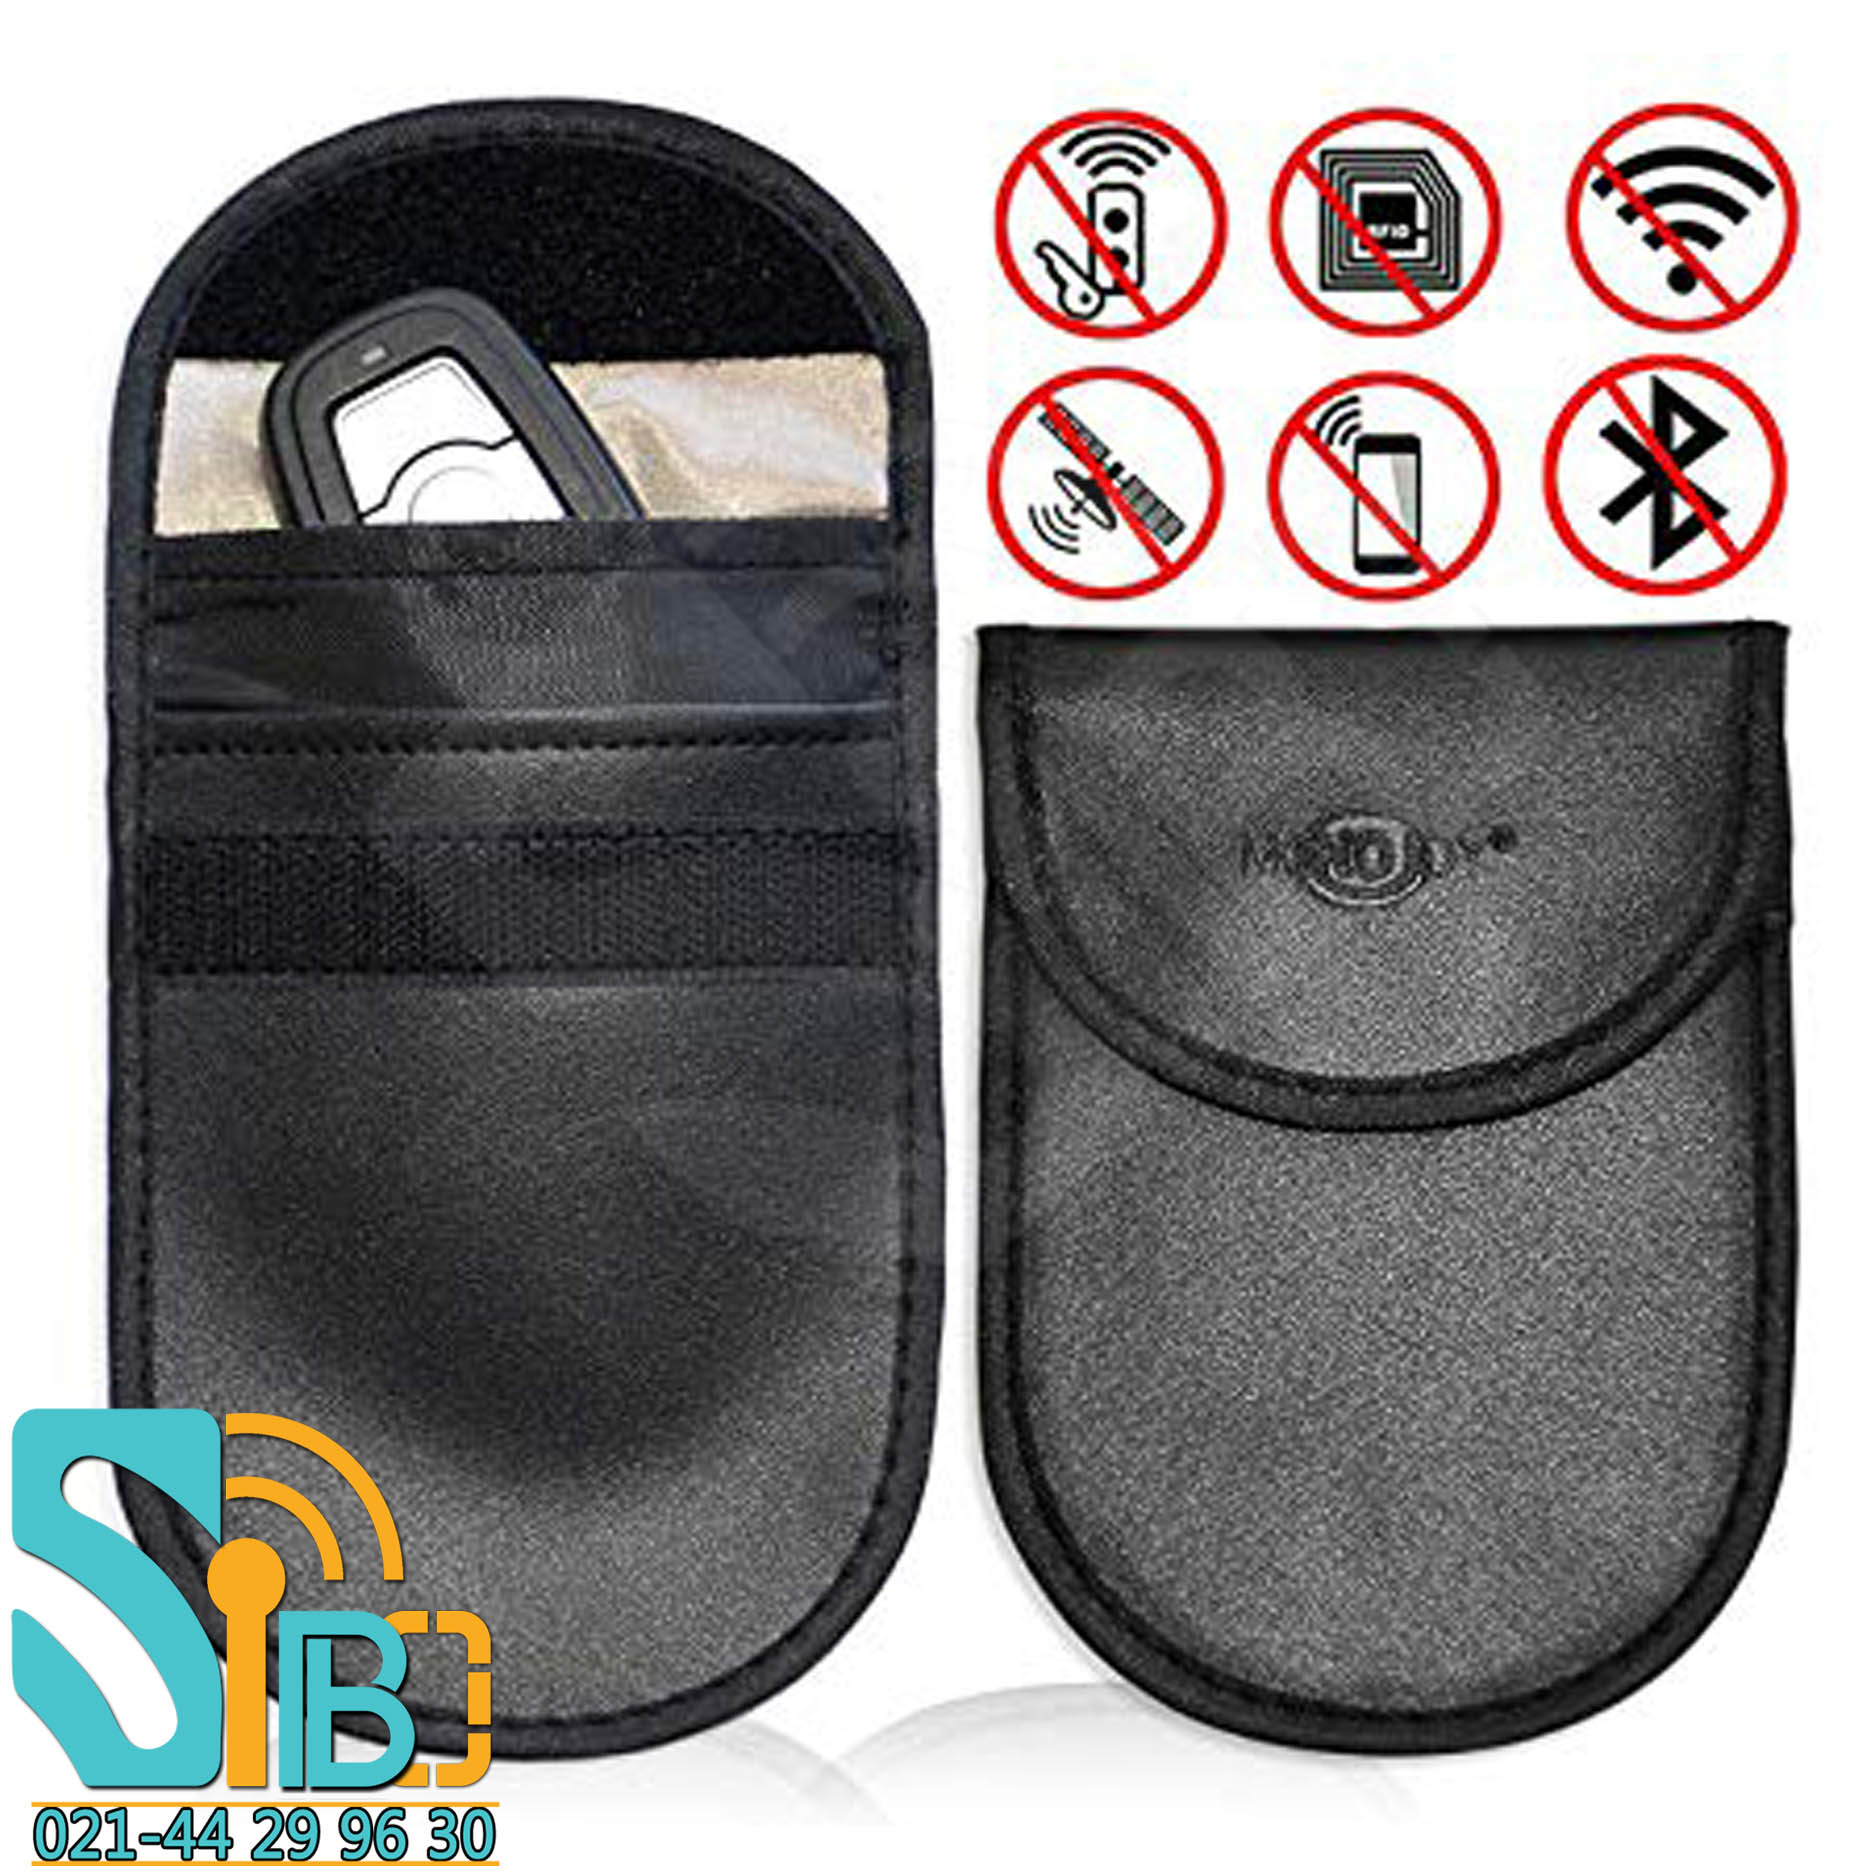 Mobile phone signal jammer bag